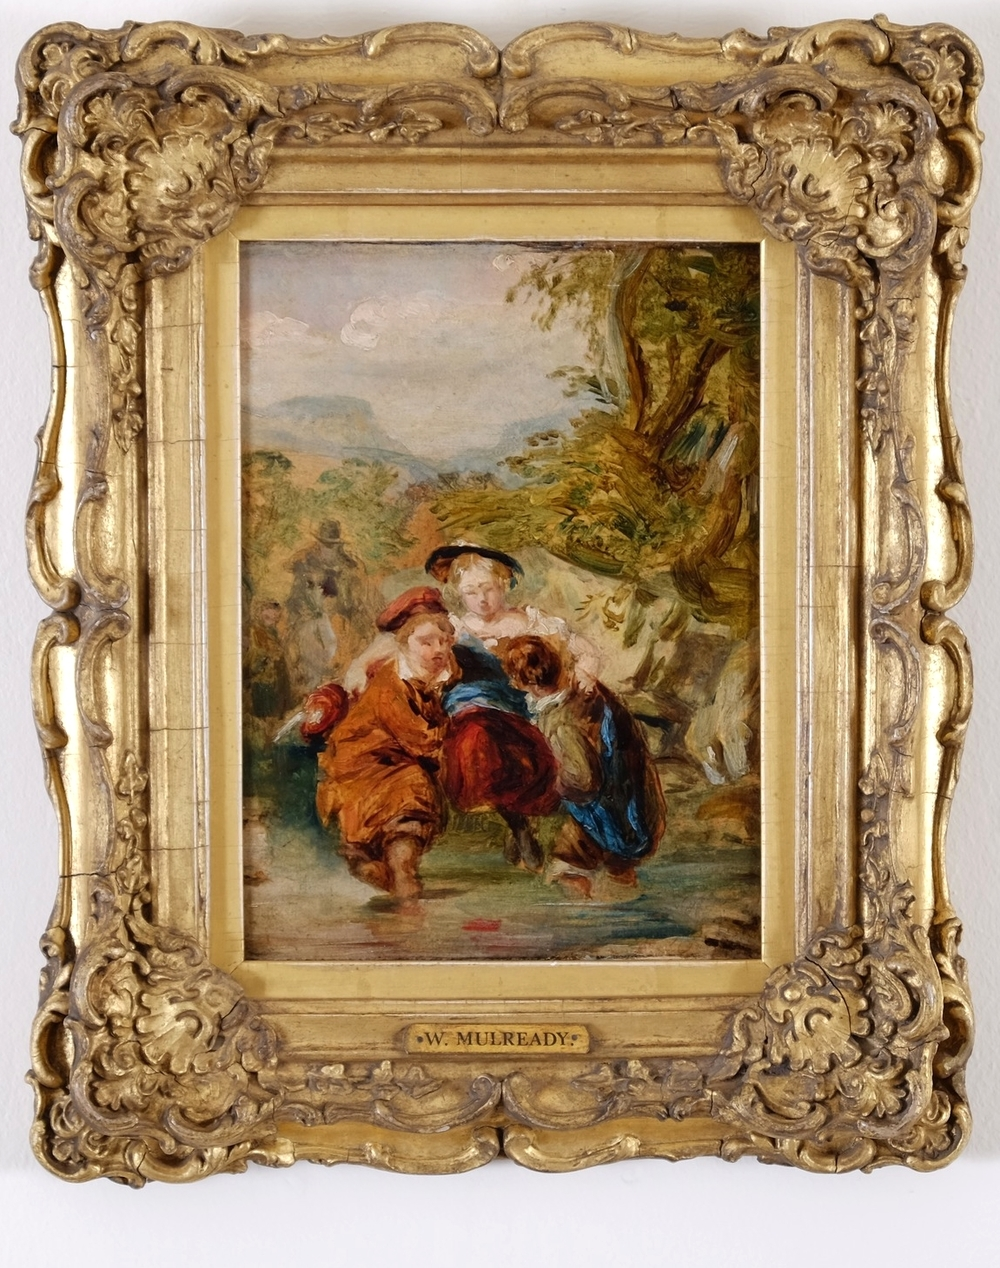 "This very special and beautiful work is the preliminary oil sketch for William Mulready's infamous painting, held by the Tate, London entitled 'Crossing The Ford"" .  The final work was exhibited with great success in 1842 at The Royal Academy and when Mulready was at the height of his career ""One of the most beautiful paintings ever produced in England"" Art Union 1842. This oil sketch held at Nigel Rhodes Fine Art Gallery, Stamford, is a small treasure illustrating to perfection that top quality paintings that pack a punch don't need to be big."